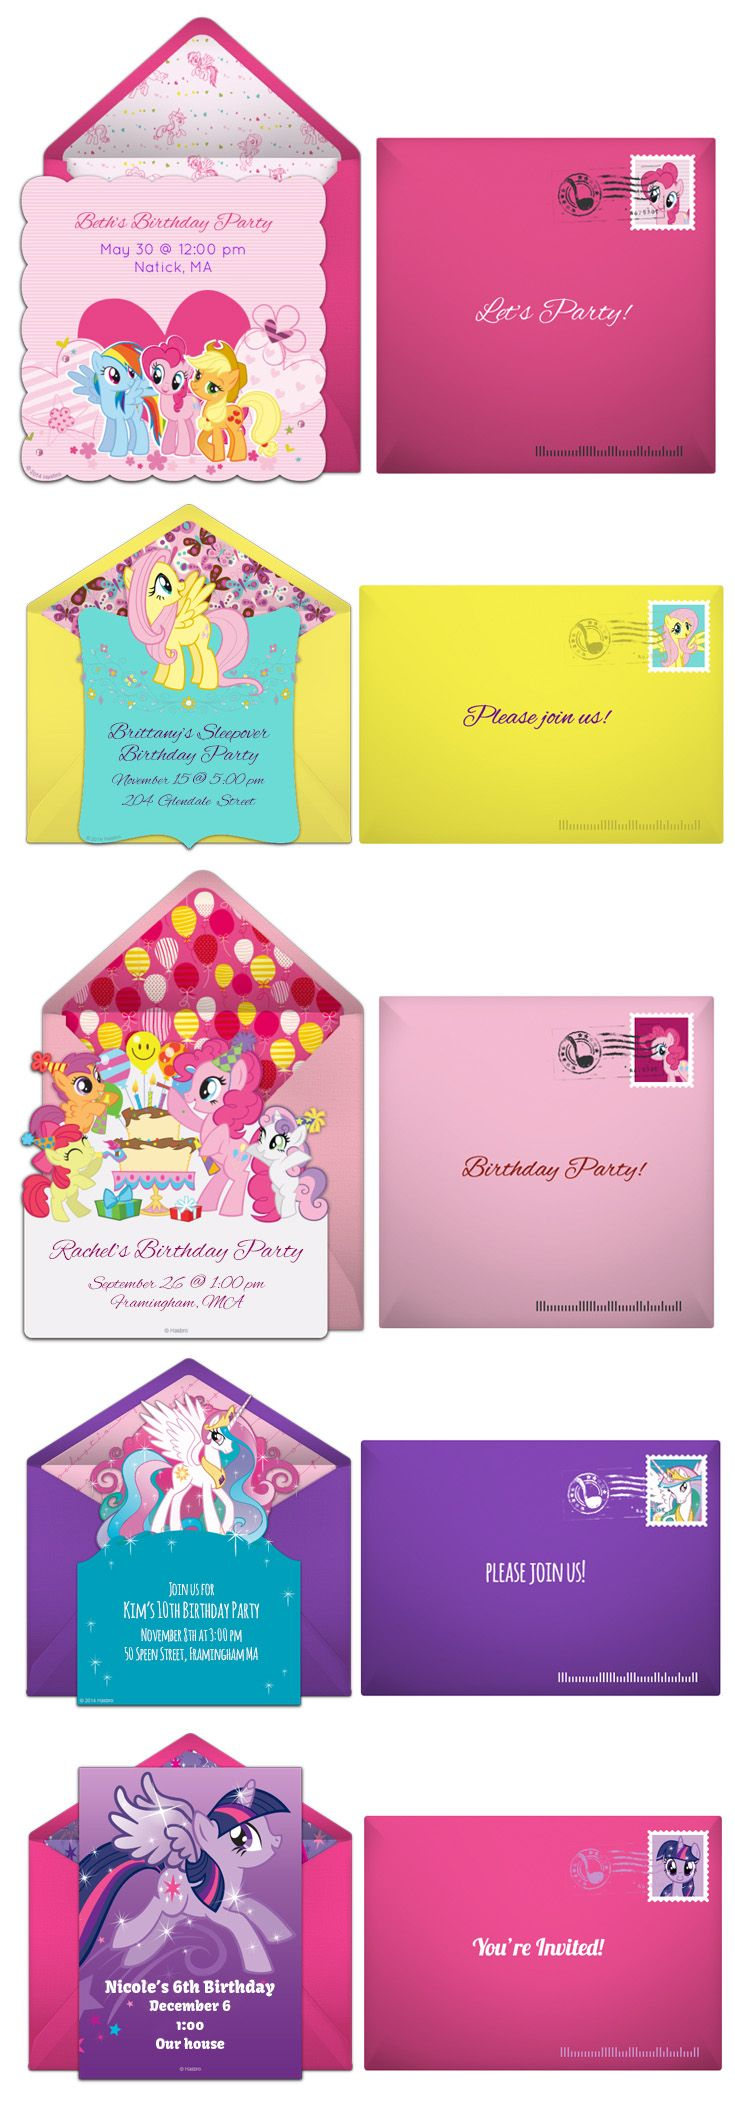 Paper invites are too formal, and emails are too casual. Get it just right with online invitations from Punchbowl. We've got everything you need for your My Little Pony party. http://www.punchbowl.com/mylittlepony/express?utm_source=Pinterest&utm_medium=10.2P